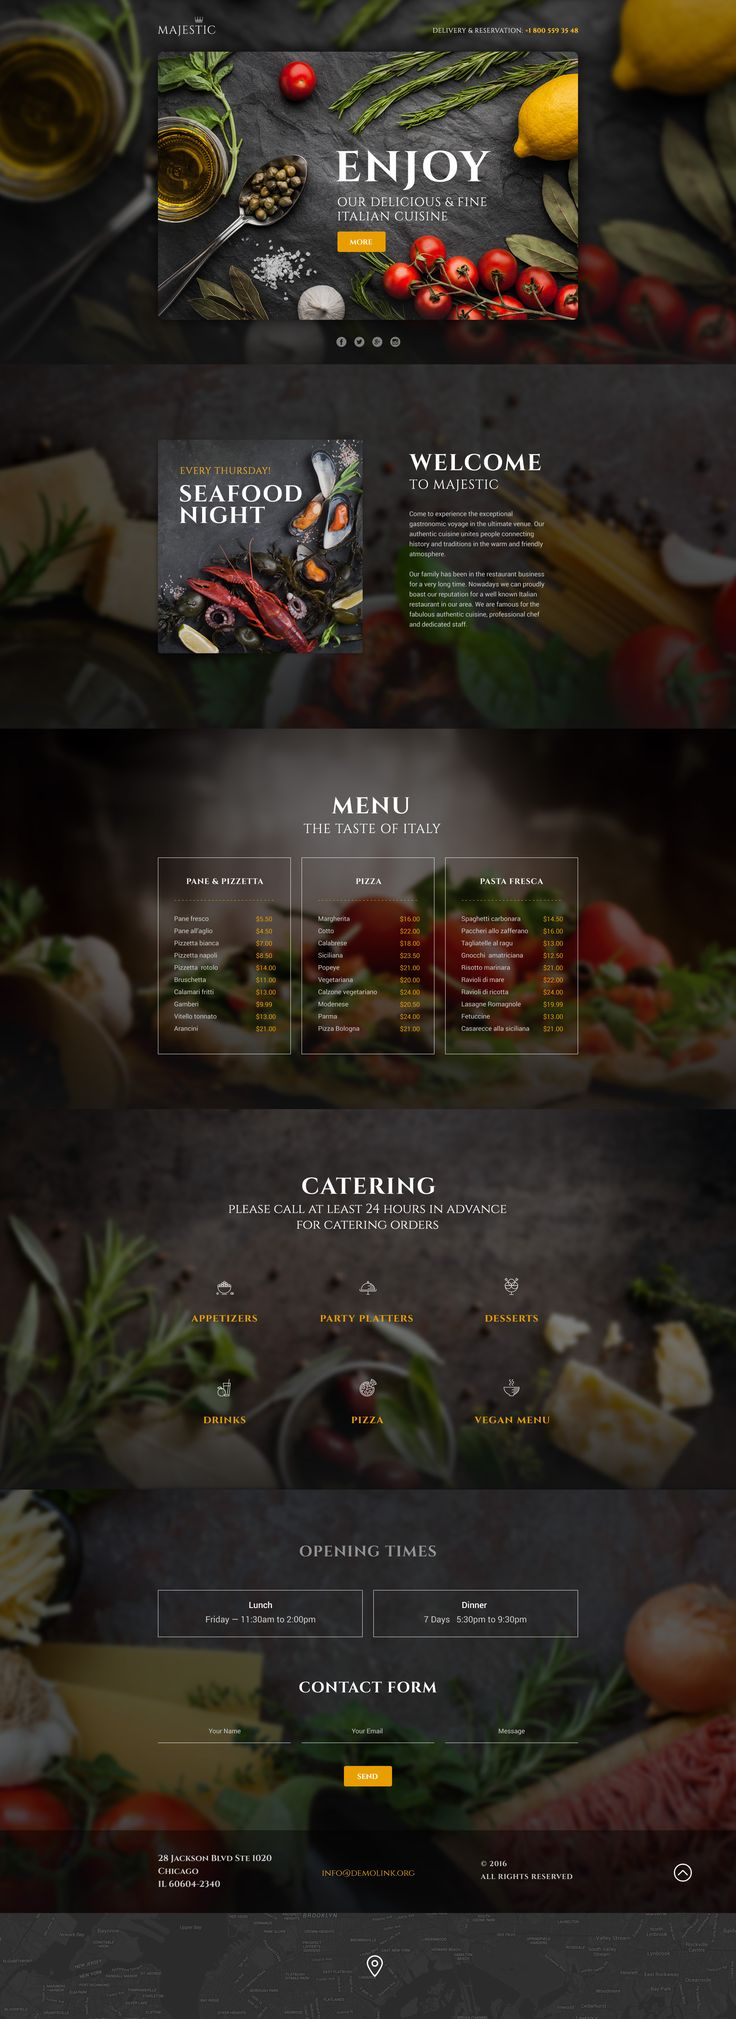 Download our Italian Restaurant Responsive Landing Page Template. Creative design and parallax animation make a visitor focus on divine pictures of food and almost feel their smell. The design is responsive, so all the awesome photos will look sharp on every device a client would like to use. #italianrestaurantwebsite #italianrestaurantwebsitedesign   https://www.templatemonster.com/landing-page-template/italian-restaurant-responsive-landing-page-template-58460.html